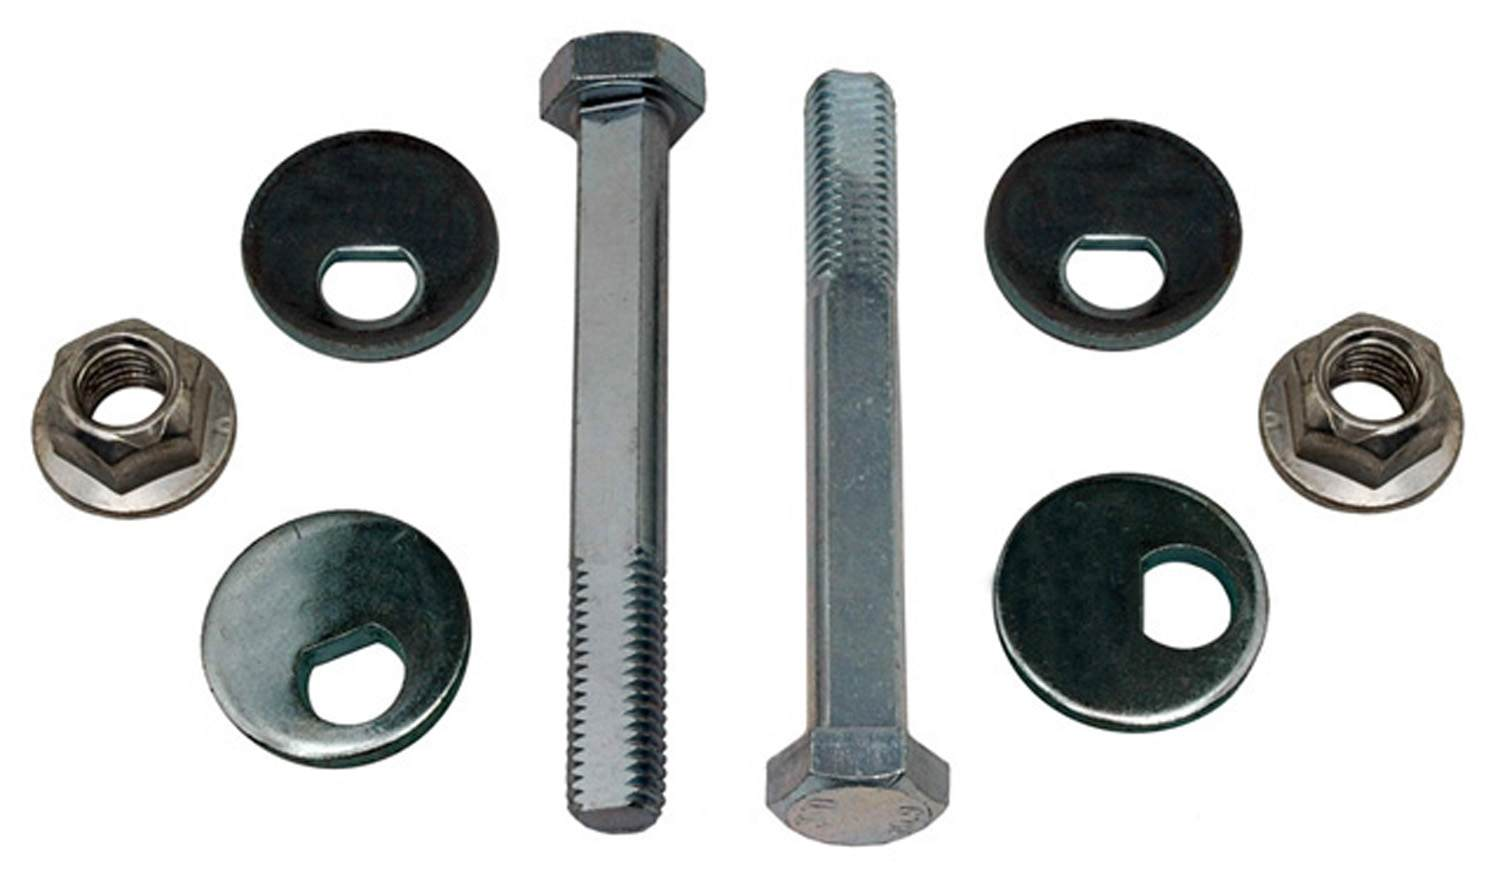 ACDELCO PROFESSIONAL - Alignment Caster / Pinion Angle Bolt Kit - DCC 45K0181